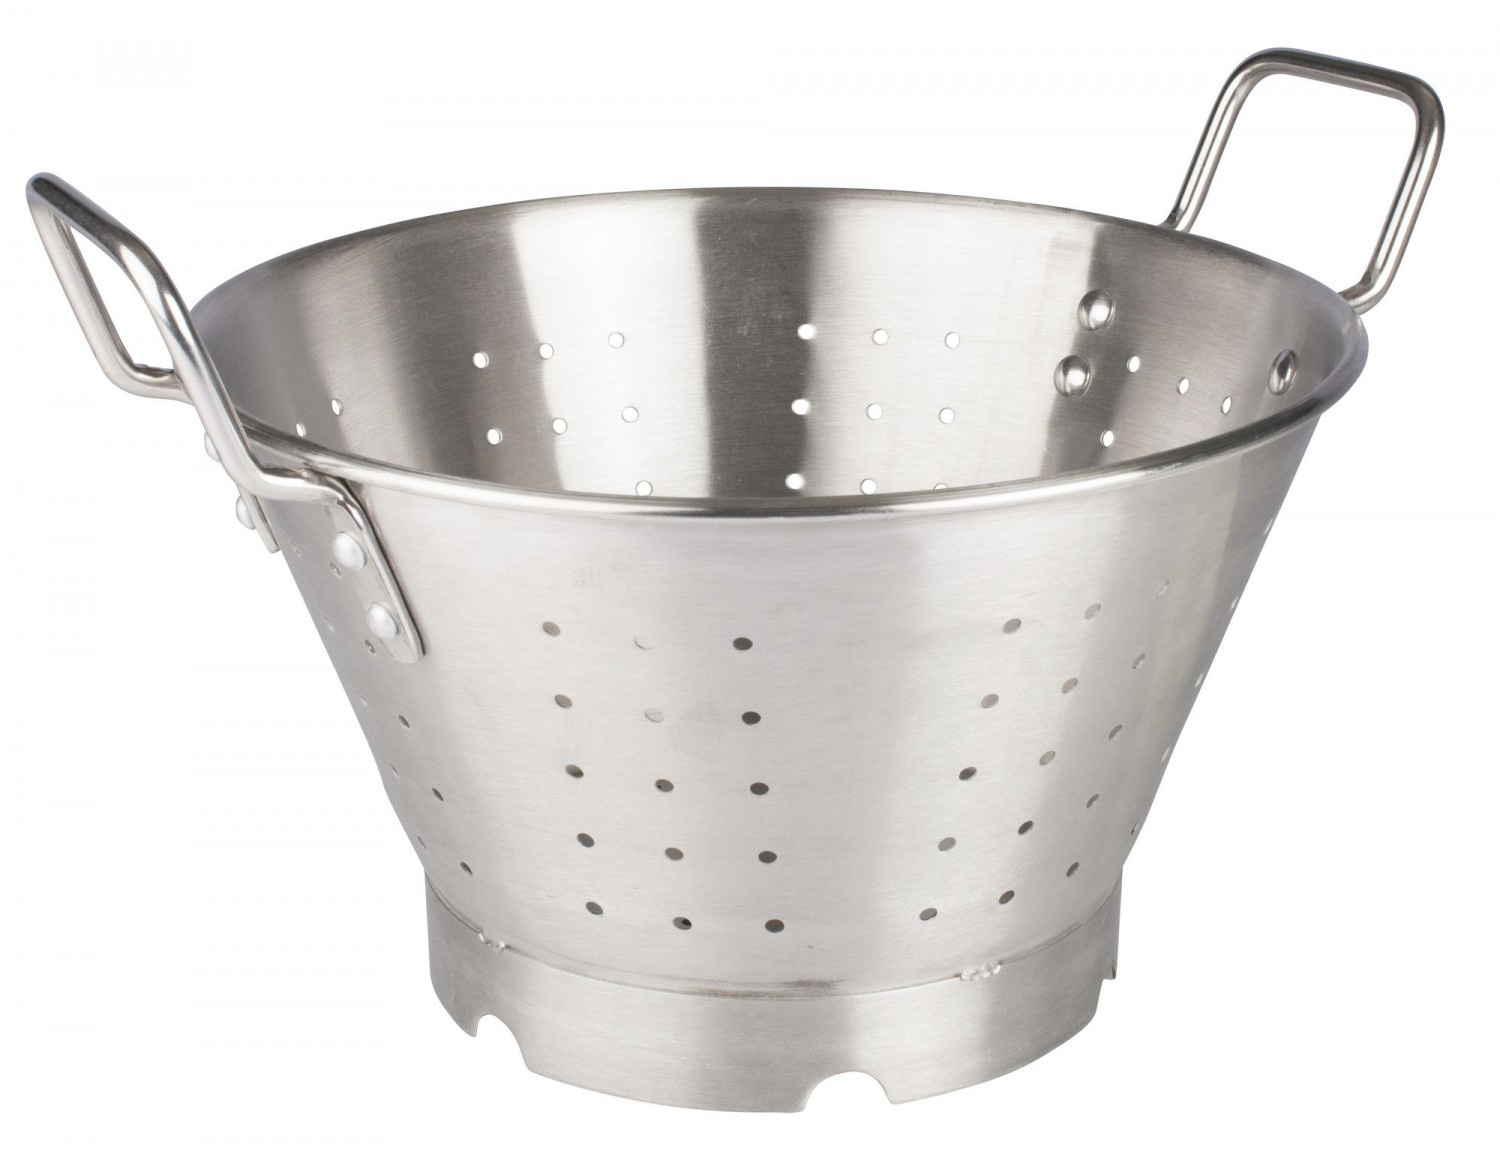 Winco SLO-11 Heavy Duty Stainless Steel Colander 11 Qt.